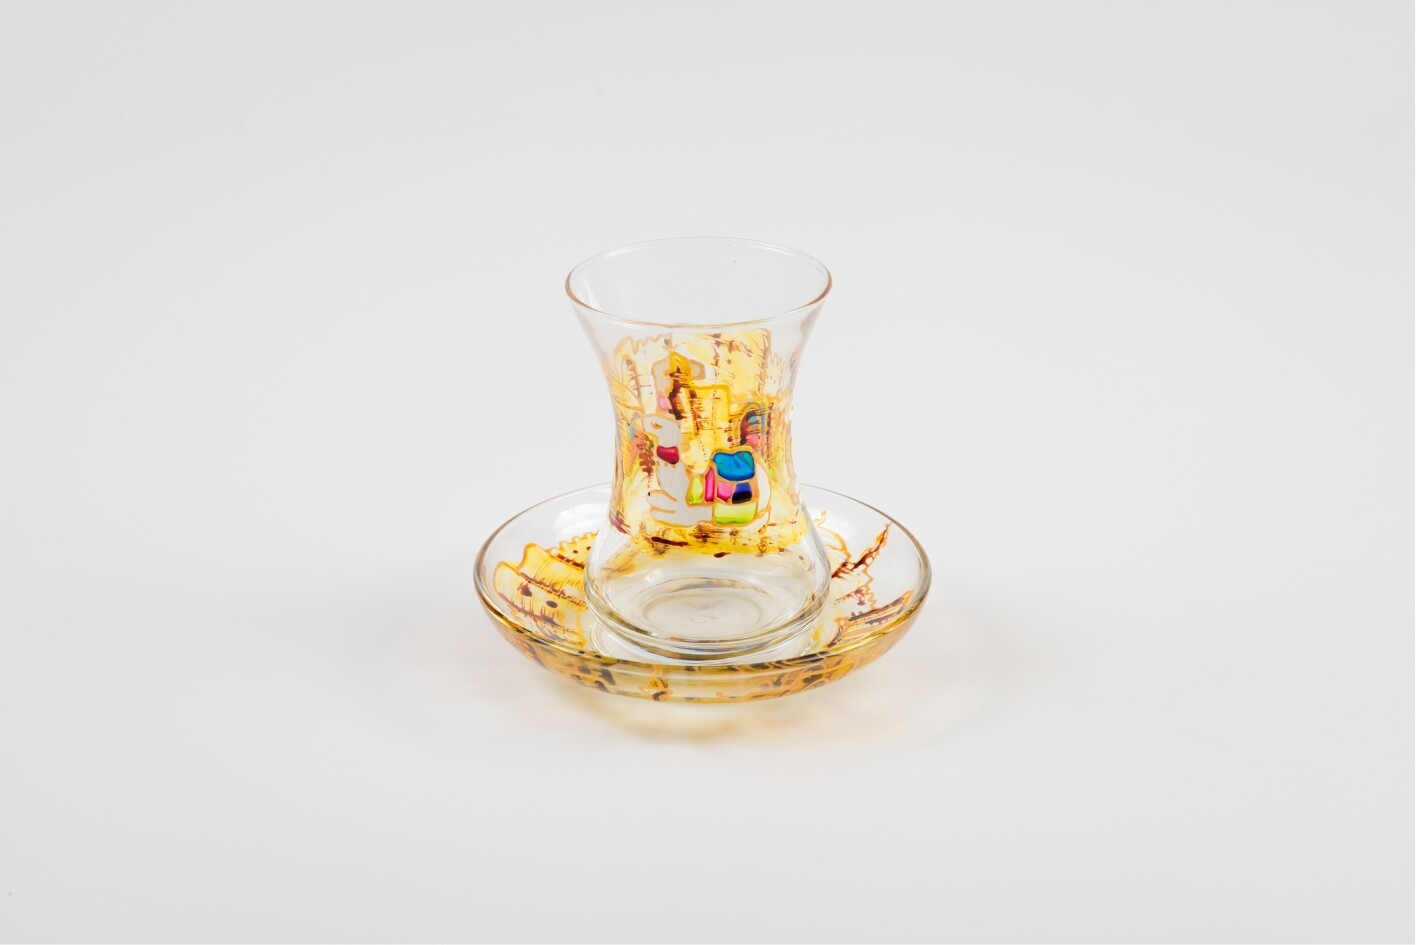 Armudu glass - Camel and Castle